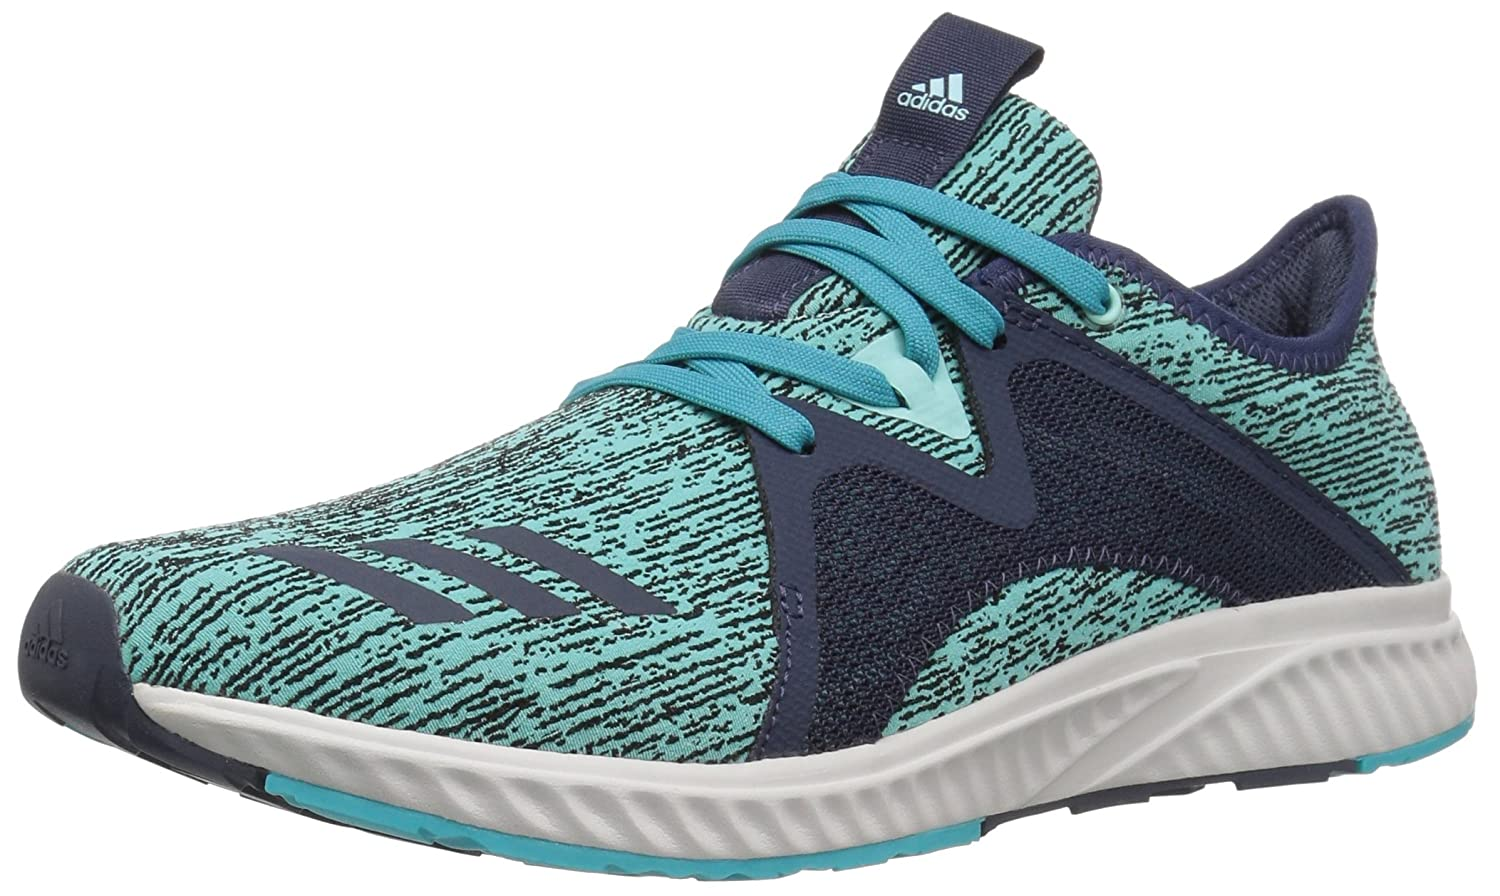 adidas Women's Edge Lux 2 Running Shoe B01MROTAX4 5.5 B(M) US|Energy Aqua/Trace Blue/Grey One